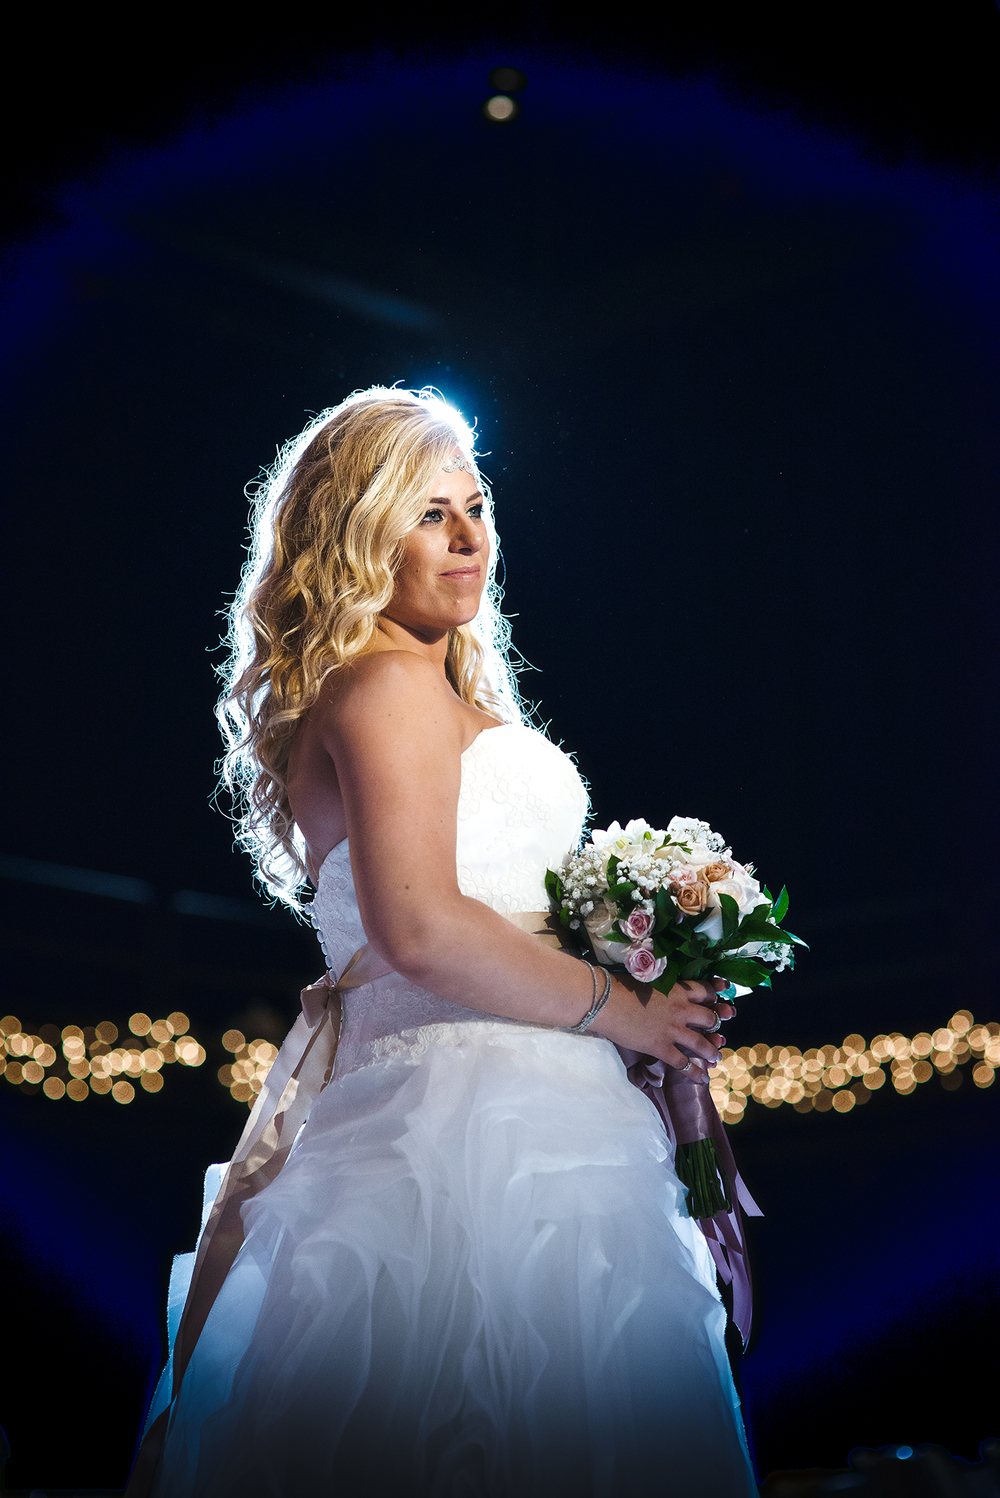 light portrait bride #1(WEB).jpg